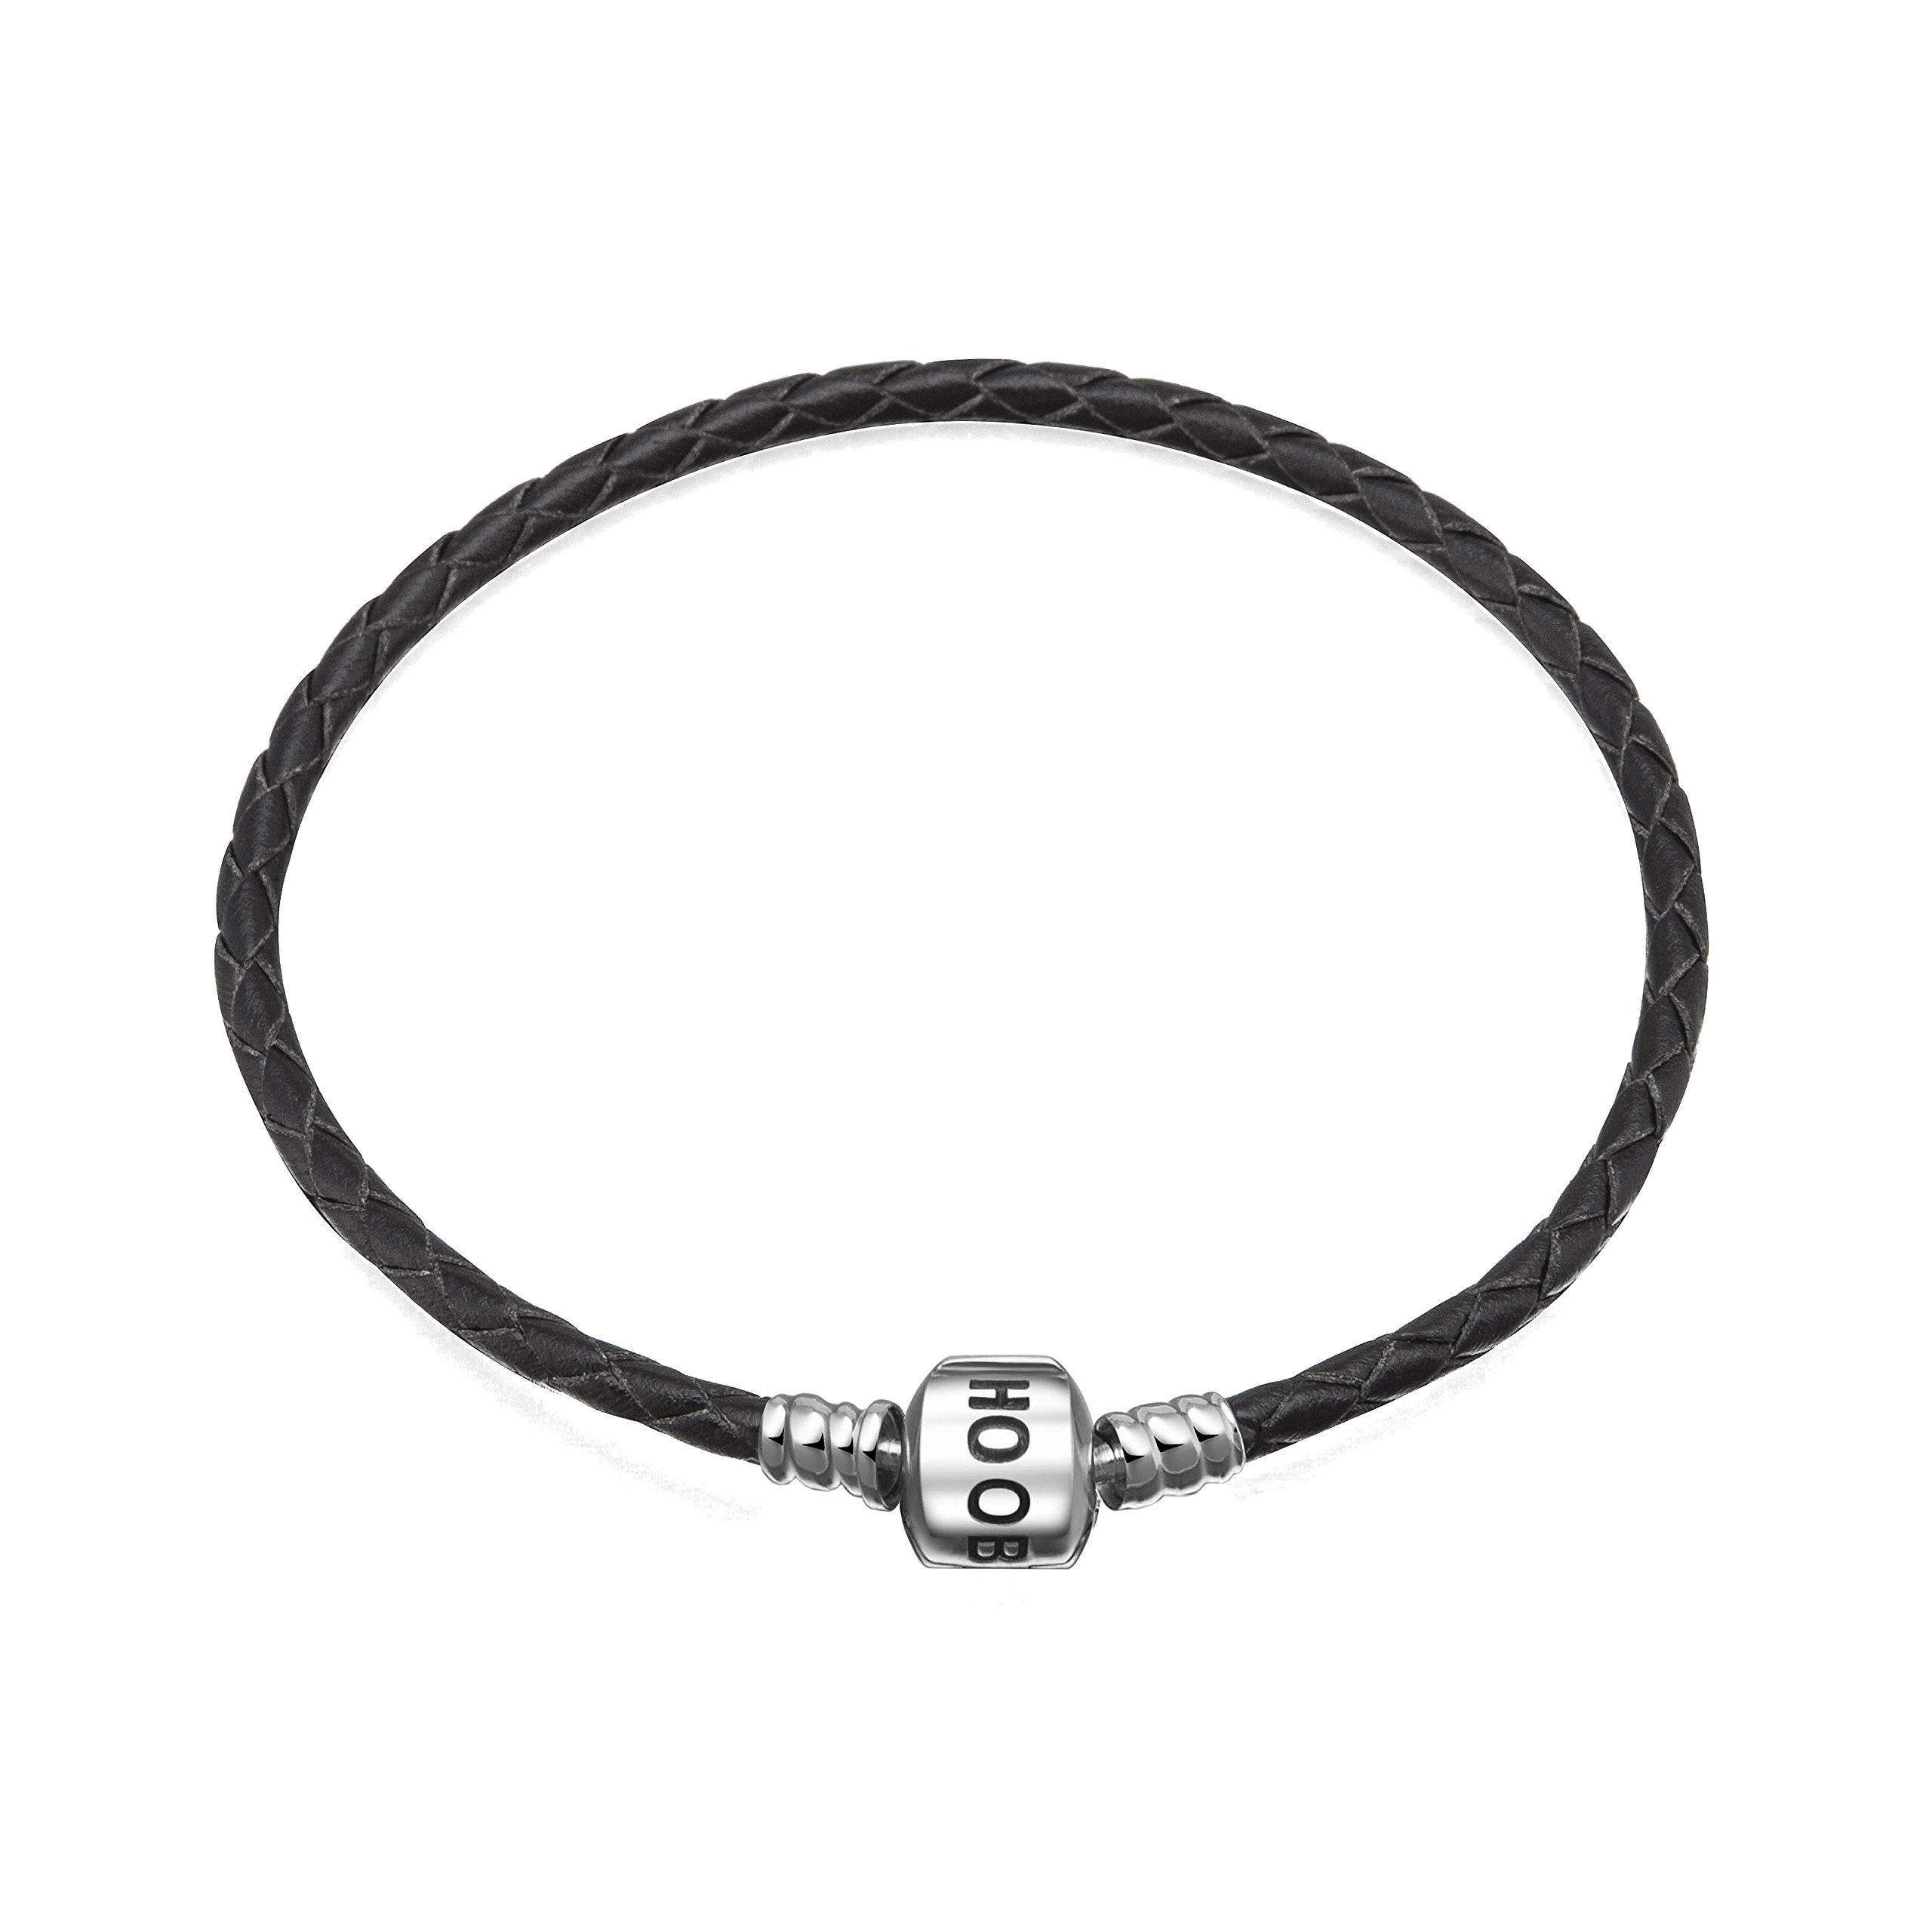 Hoobeads-Jewelry-Black-Leather-Champagne-Bracelet-925-Sterling-Silver-Barrel-Clasp-Bracelet